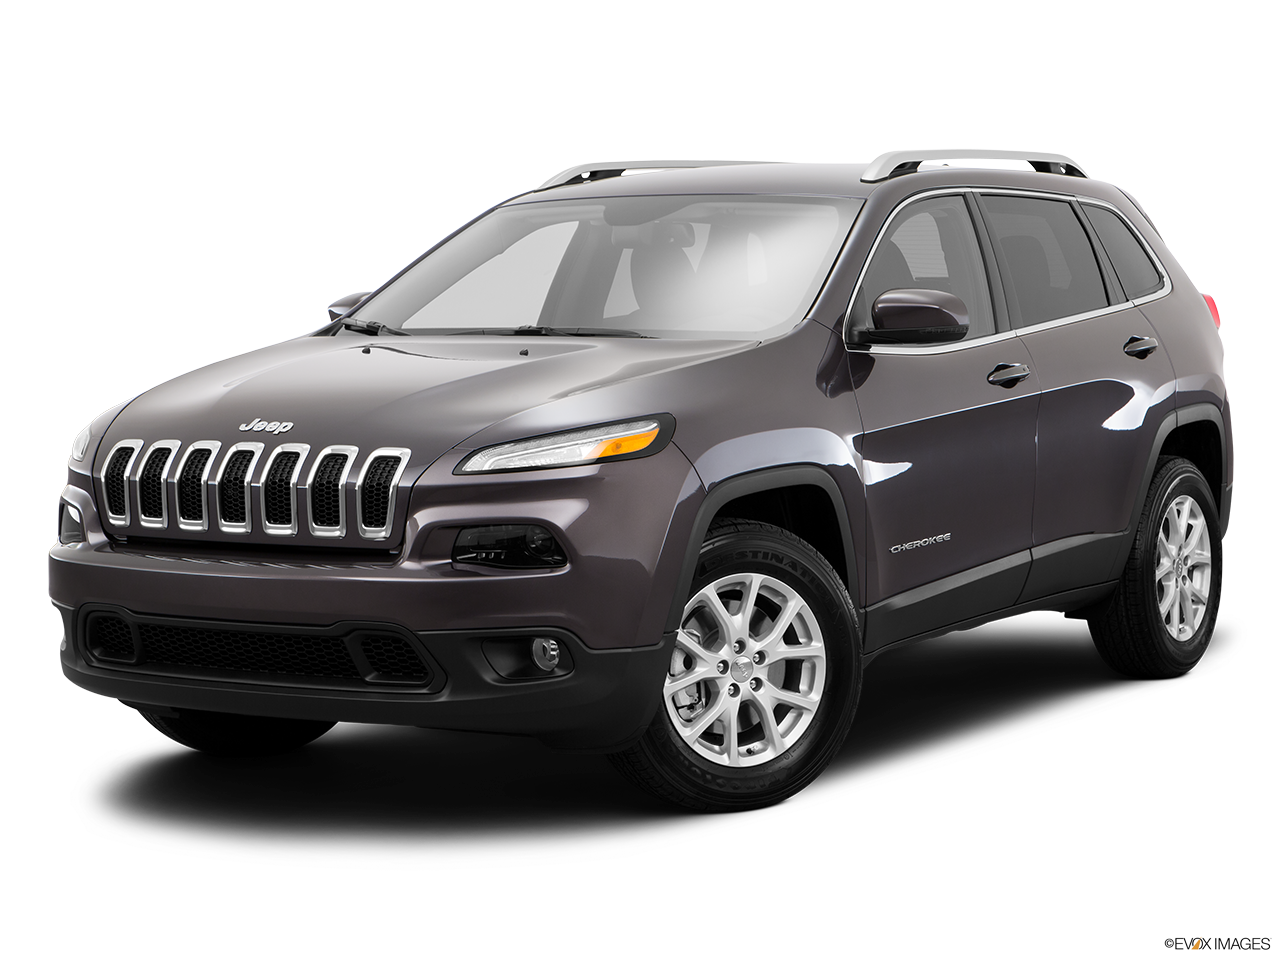 Test Drive A 2016 Jeep Cherokee at Cherry Hill Dodge Chrysler Jeep RAM in Cherry Hill